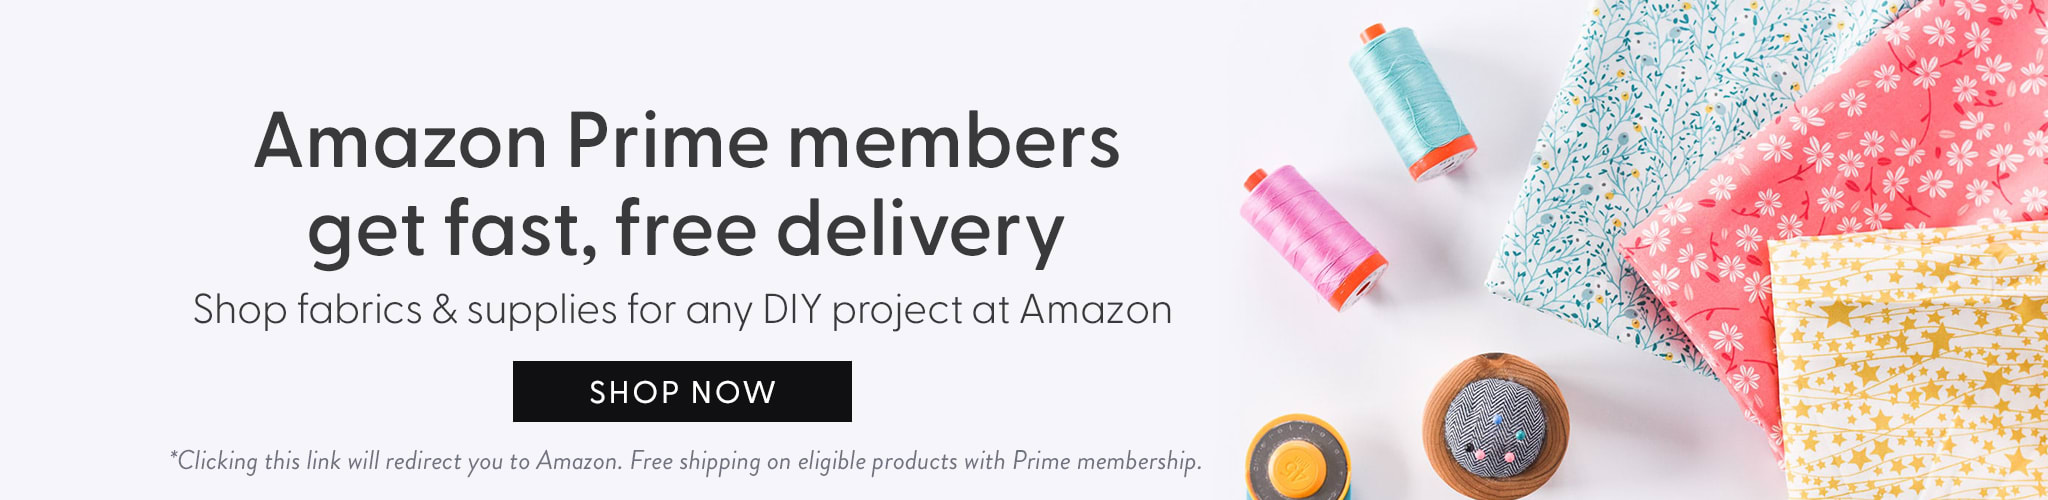 Shop Fabric on Amazon and get free 2 day prime shipping for prime members